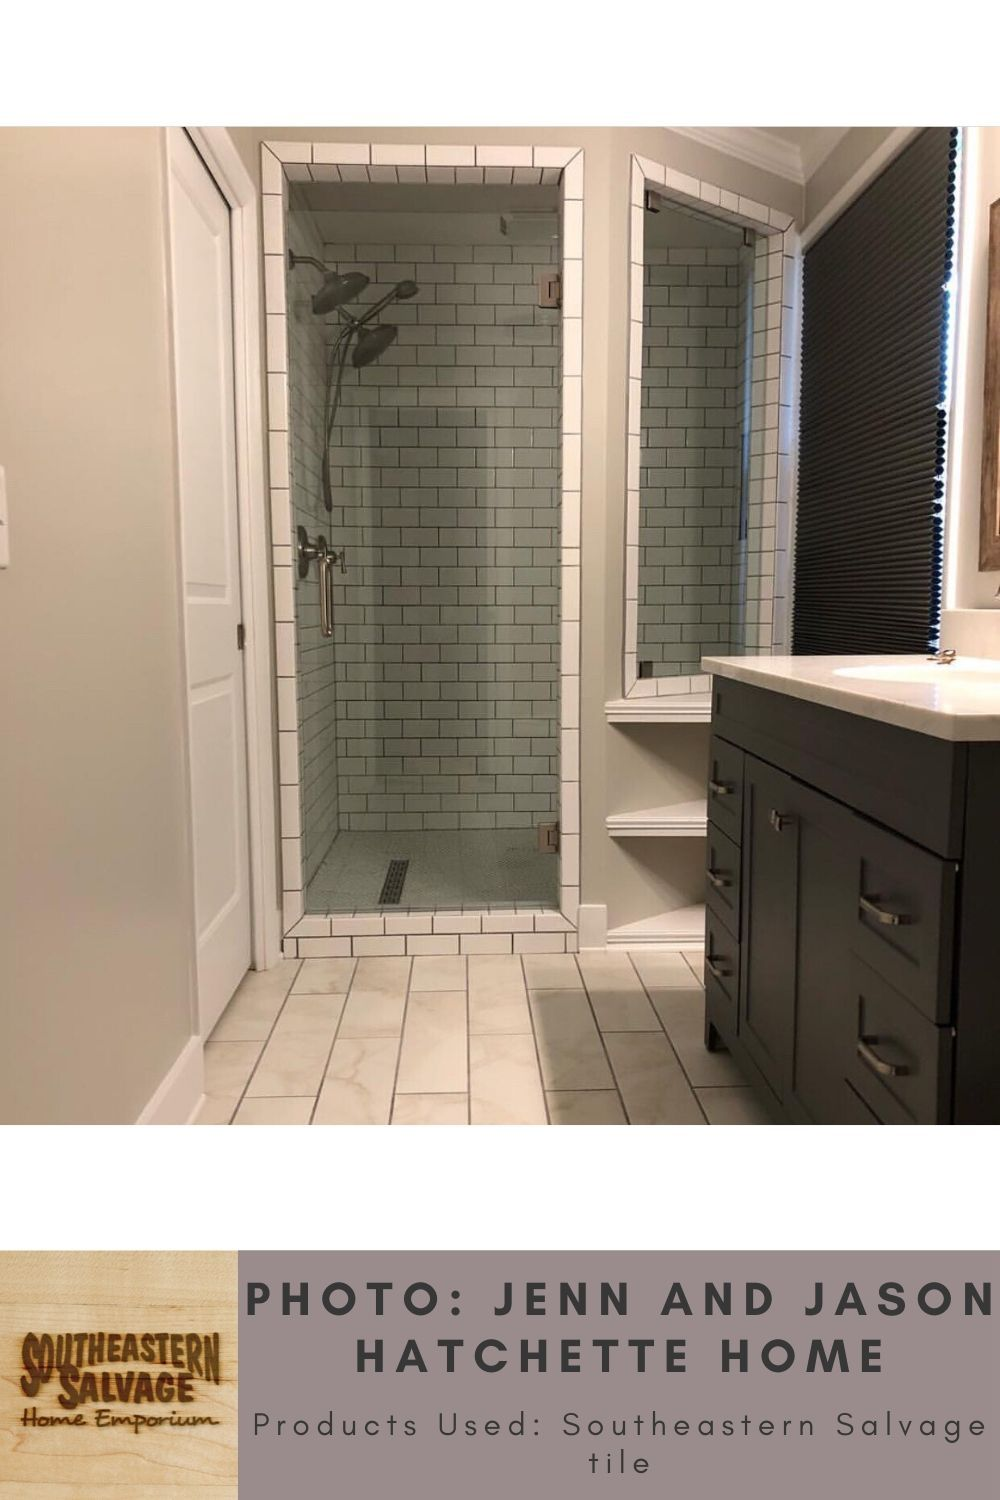 We Subway Tile And Porcelain Plank In 2020 House Styles Tiles Home